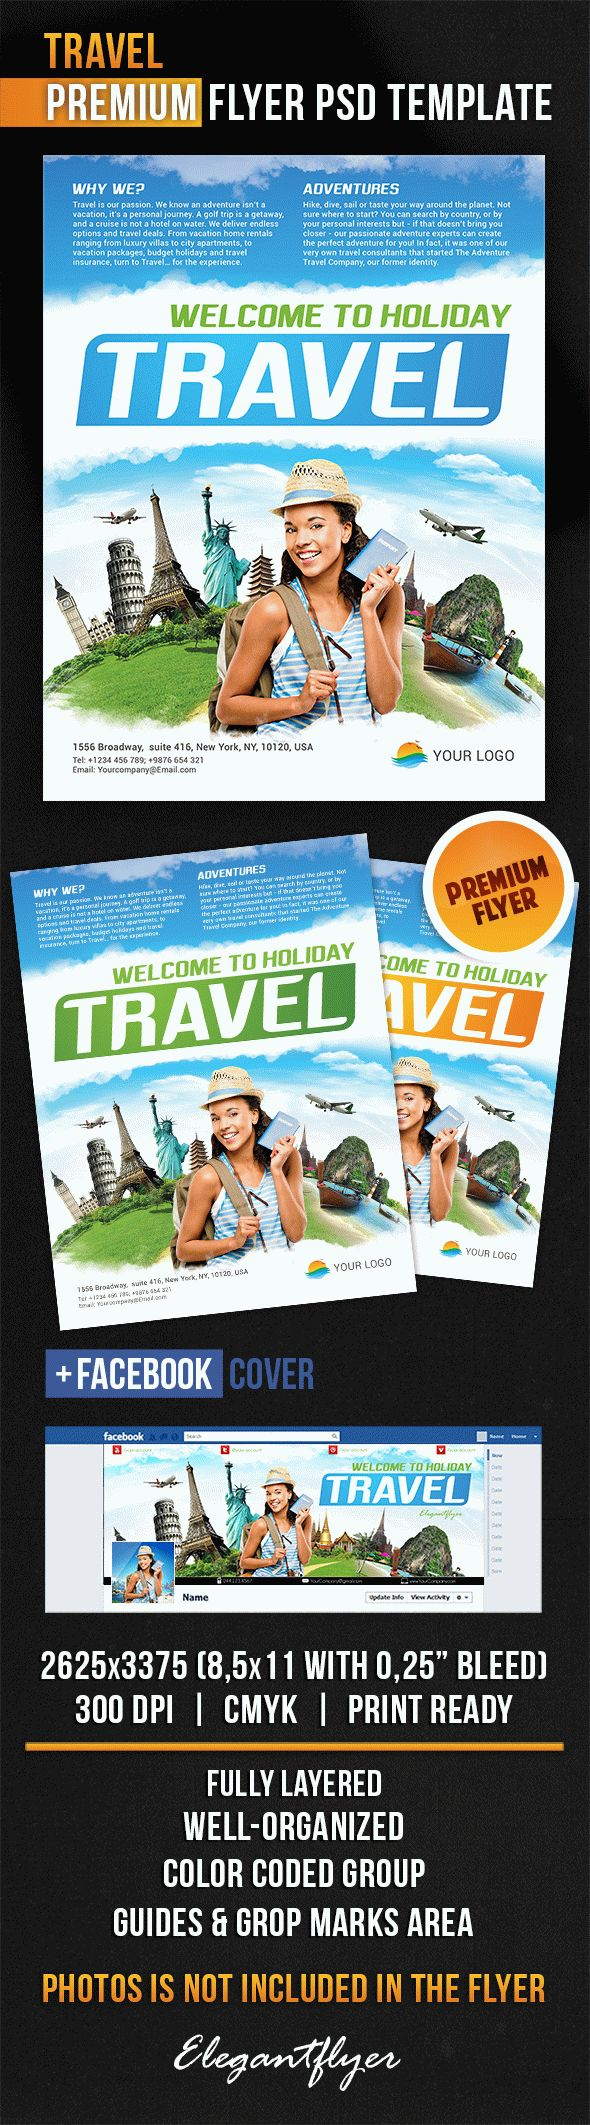 Travel – Flyer PSD Template + Facebook Cover